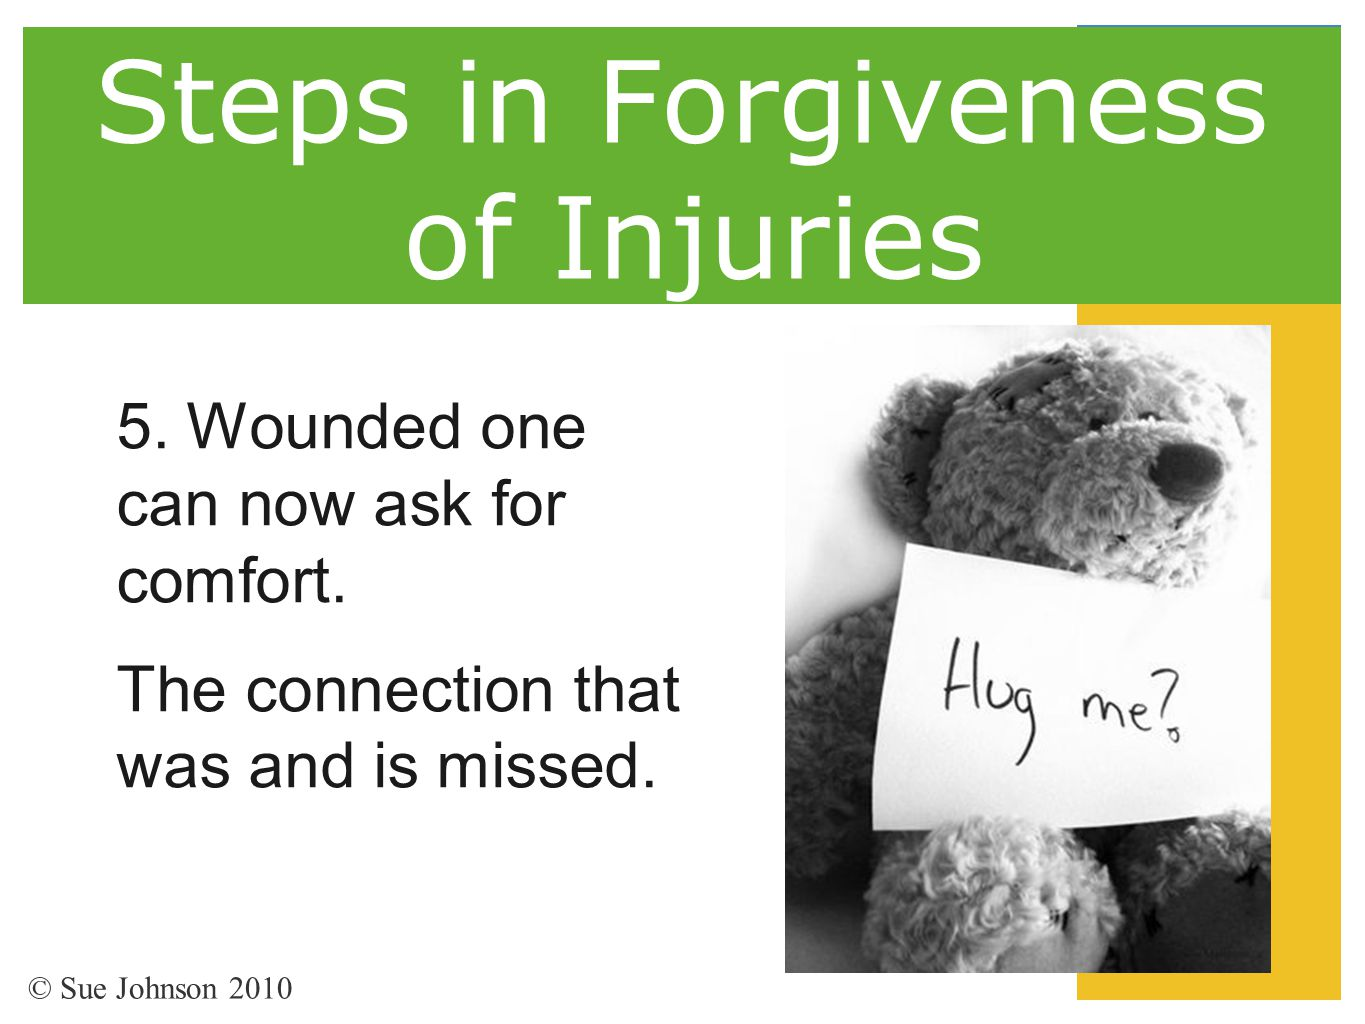 Steps in Forgiveness of Injuries 5. Wounded one can now ask for comfort. The connection that was and is missed. © Sue Johnson 2010